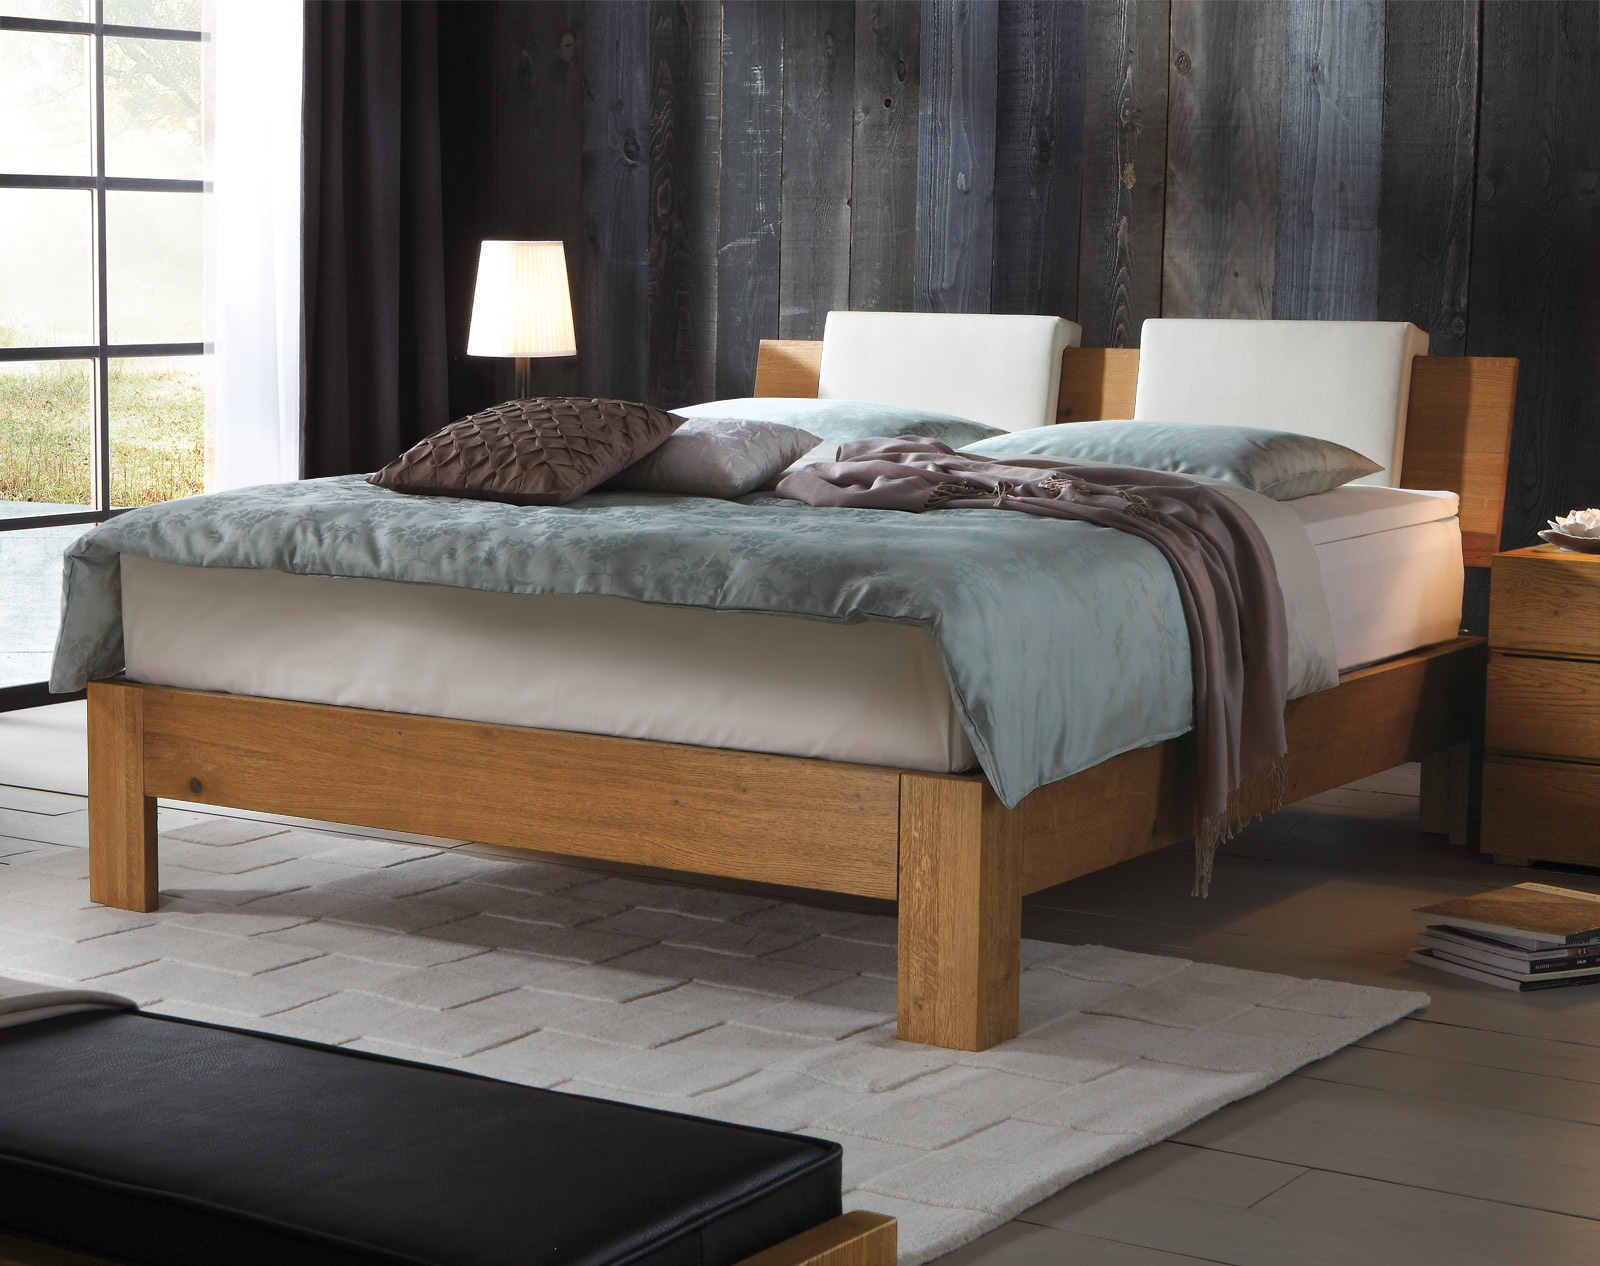 Boxspringbett Kingston aus Massivholz in Eiche | BETTEN.de